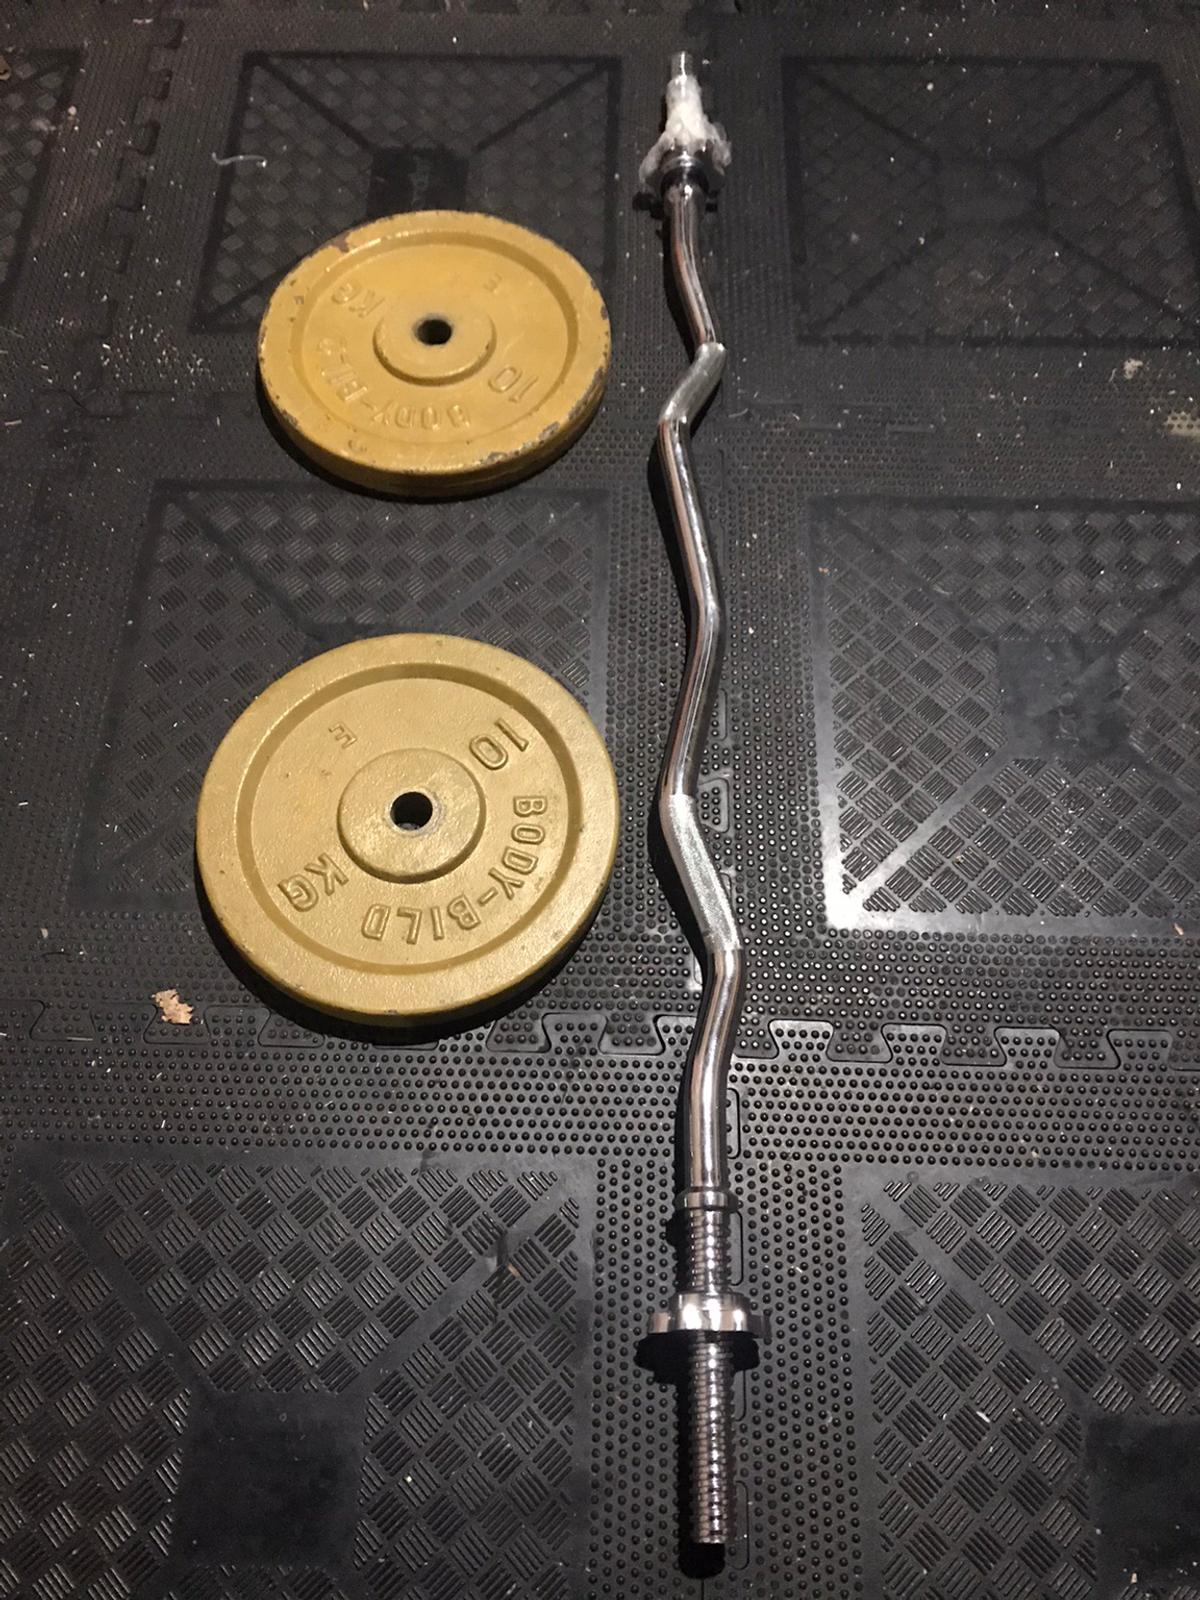 Solid chrome ez bar 2 x 10kg plates  No offers please Bar is brand new